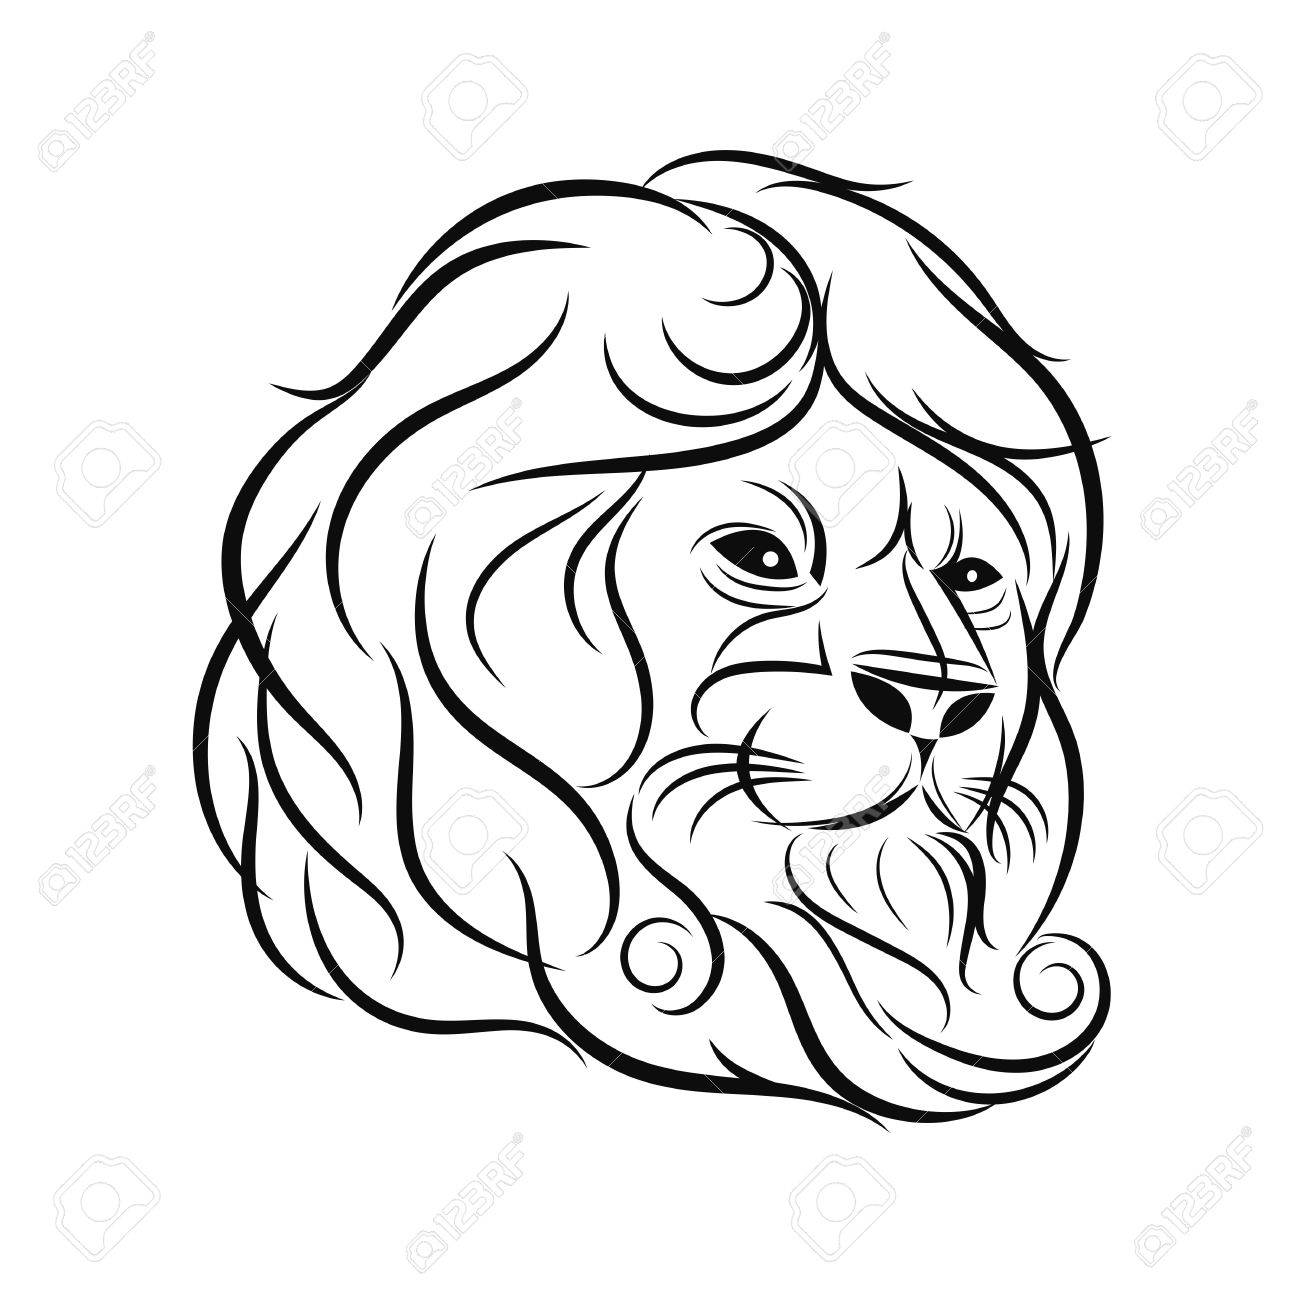 hand draw lion head outline design on gray background stock vector 64603914